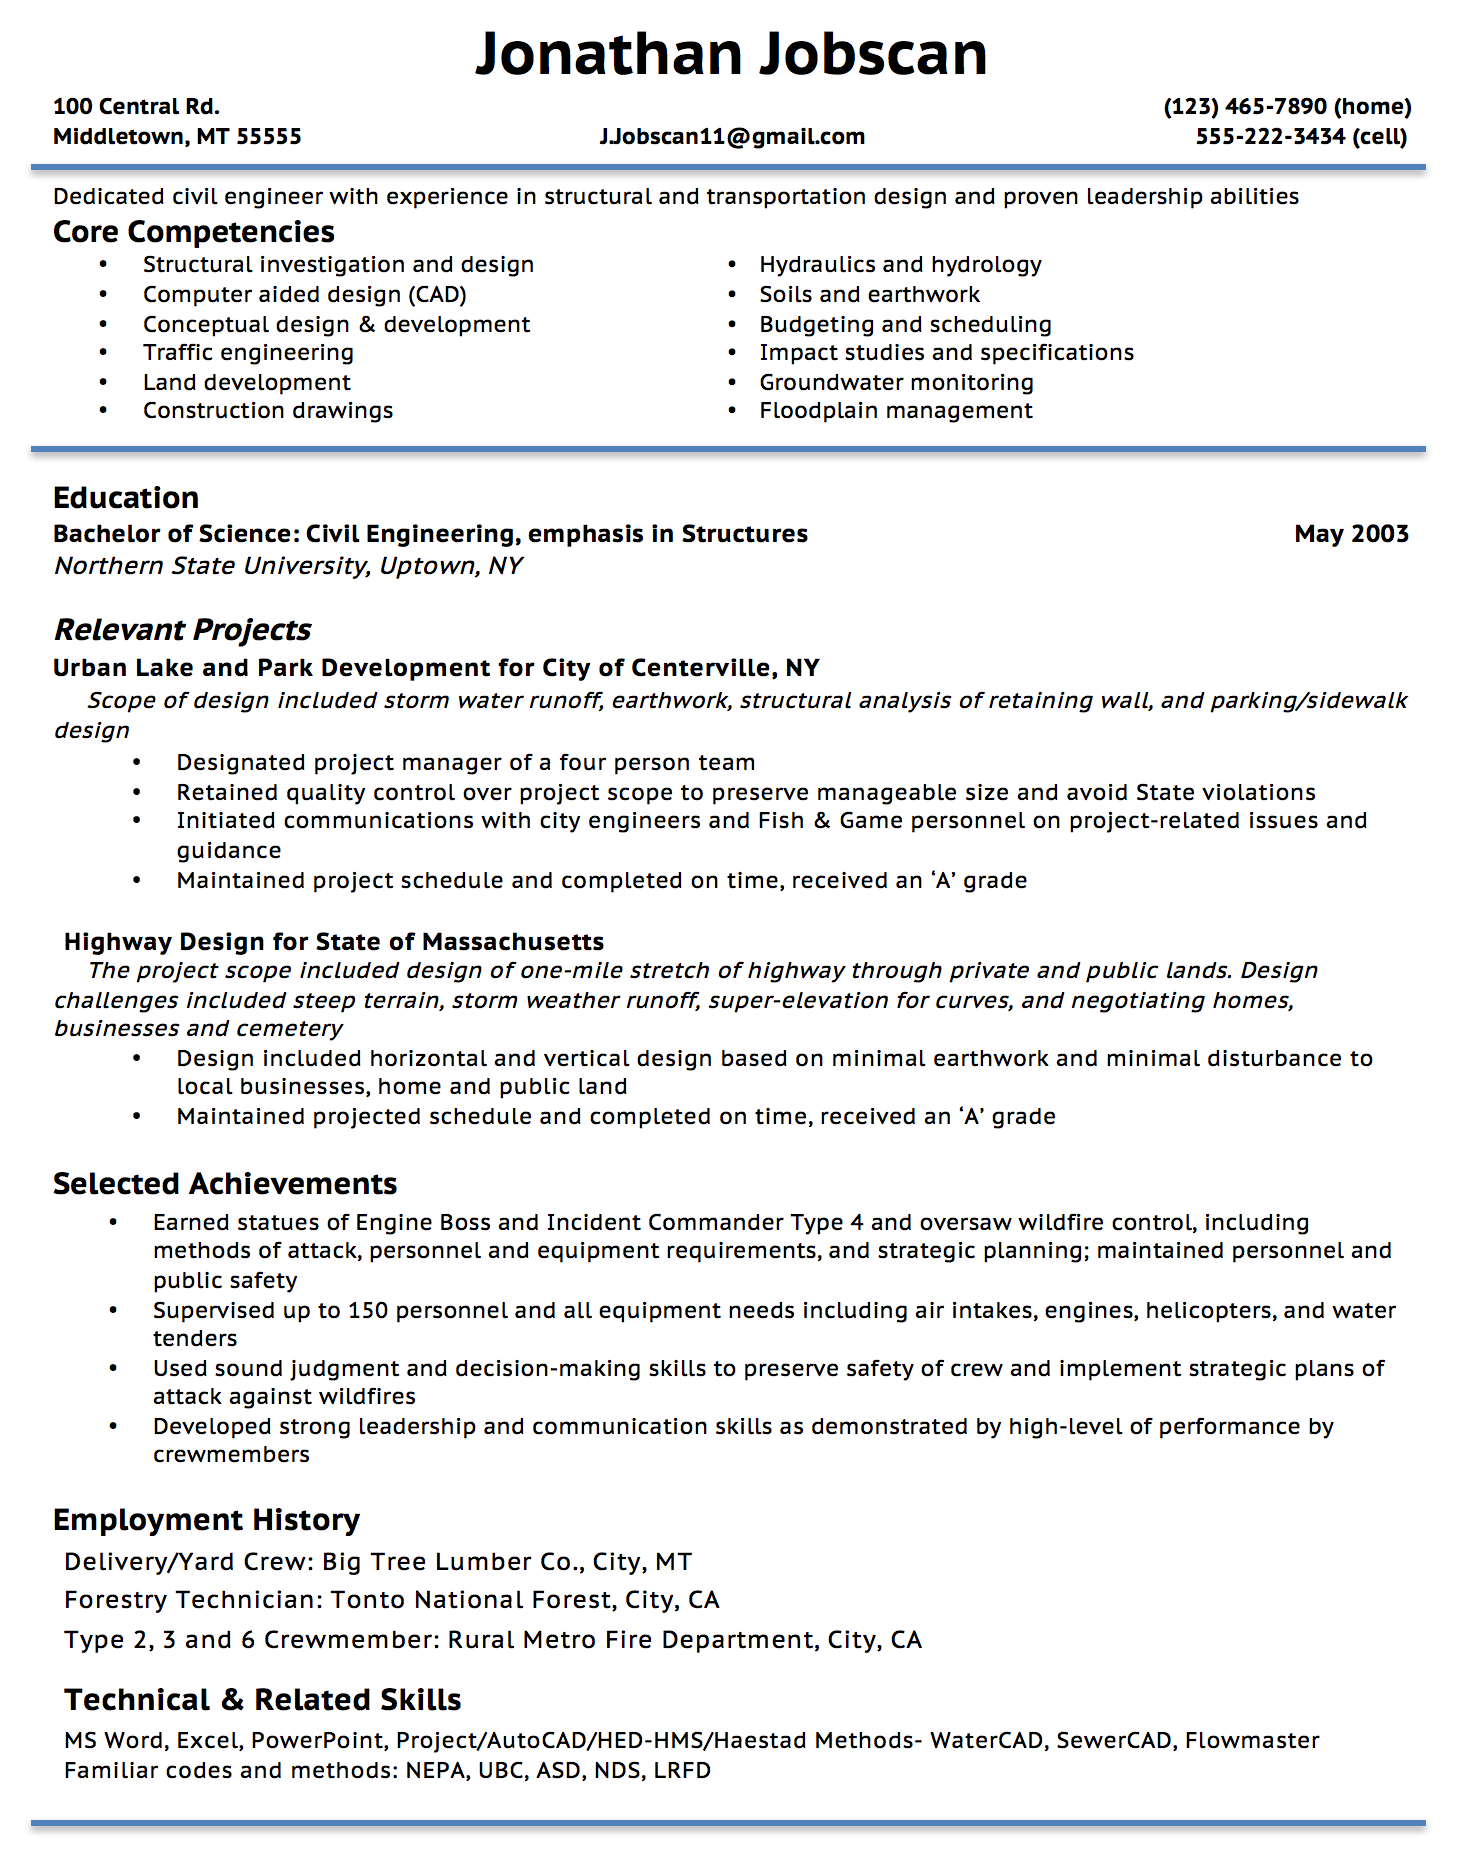 Opposenewapstandardsus  Stunning Resume Writing Guide  Jobscan With Exciting Example Of A Functional Resume Format With Astounding Resume Bank Teller Also Successful Resume Examples In Addition Logistics Resume Samples And Examples Of Resumes For Teachers As Well As Administrative Resume Objective Additionally Resume Templates For Nurses From Jobscanco With Opposenewapstandardsus  Exciting Resume Writing Guide  Jobscan With Astounding Example Of A Functional Resume Format And Stunning Resume Bank Teller Also Successful Resume Examples In Addition Logistics Resume Samples From Jobscanco